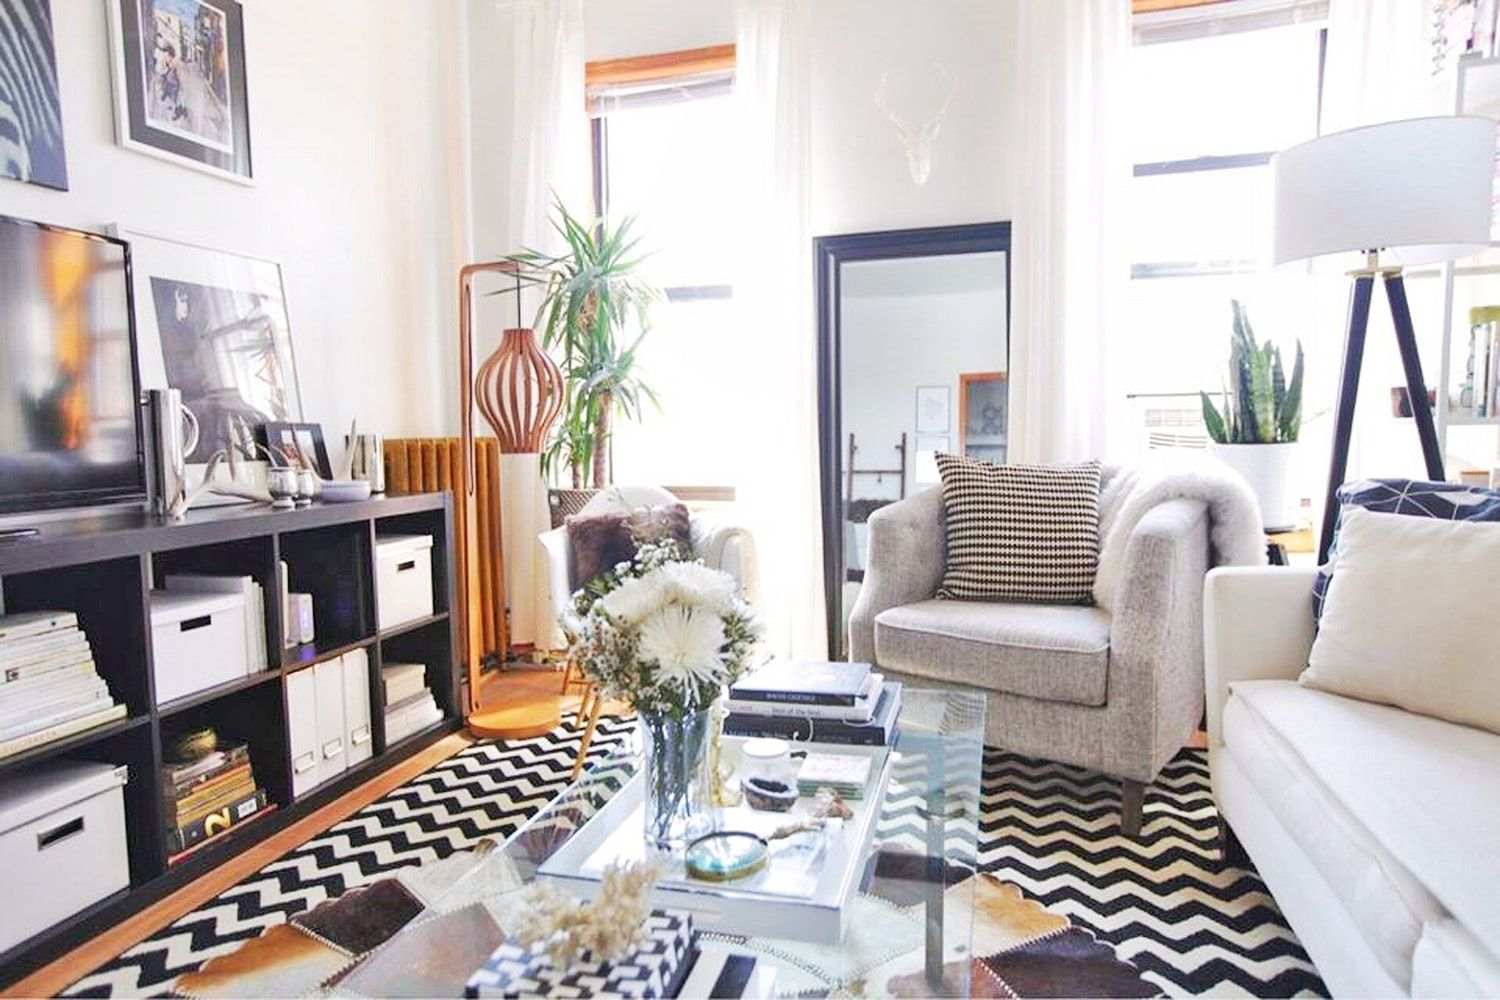 An Avid Craigslister S Black And White Brooklyn Rental Is Full Of Deals Home Decor Rental House Decorating Home Decor House Tours